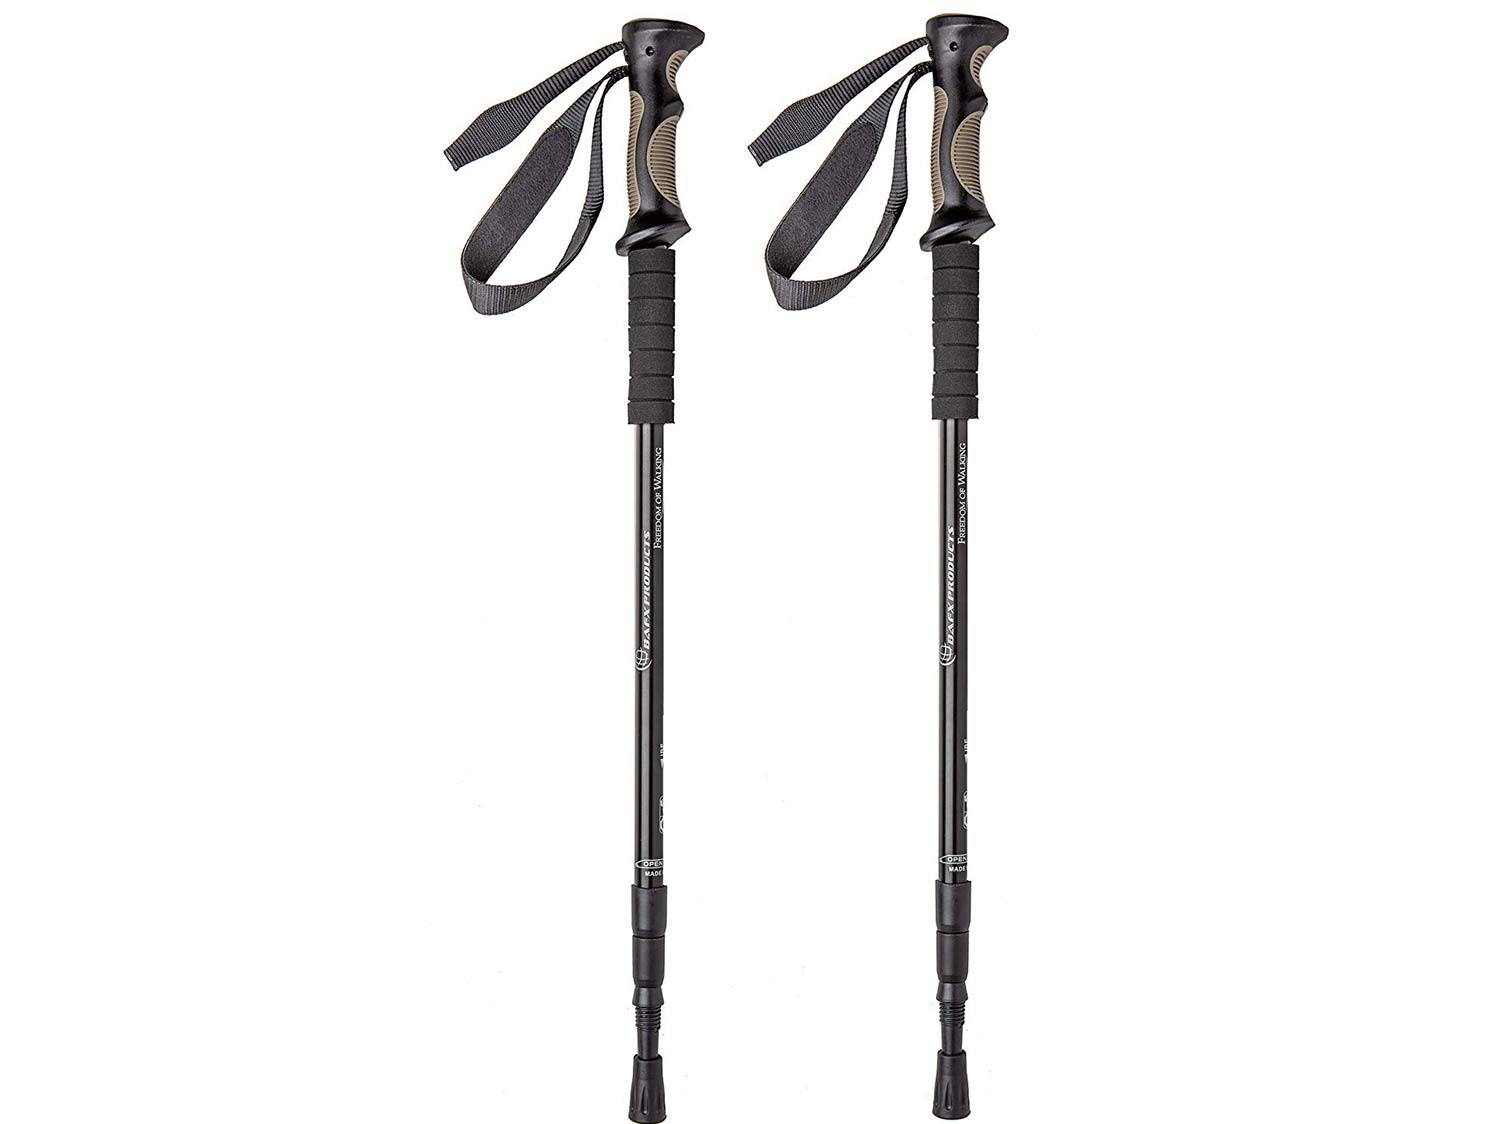 BAFX Products Adjustable Hiking Poles